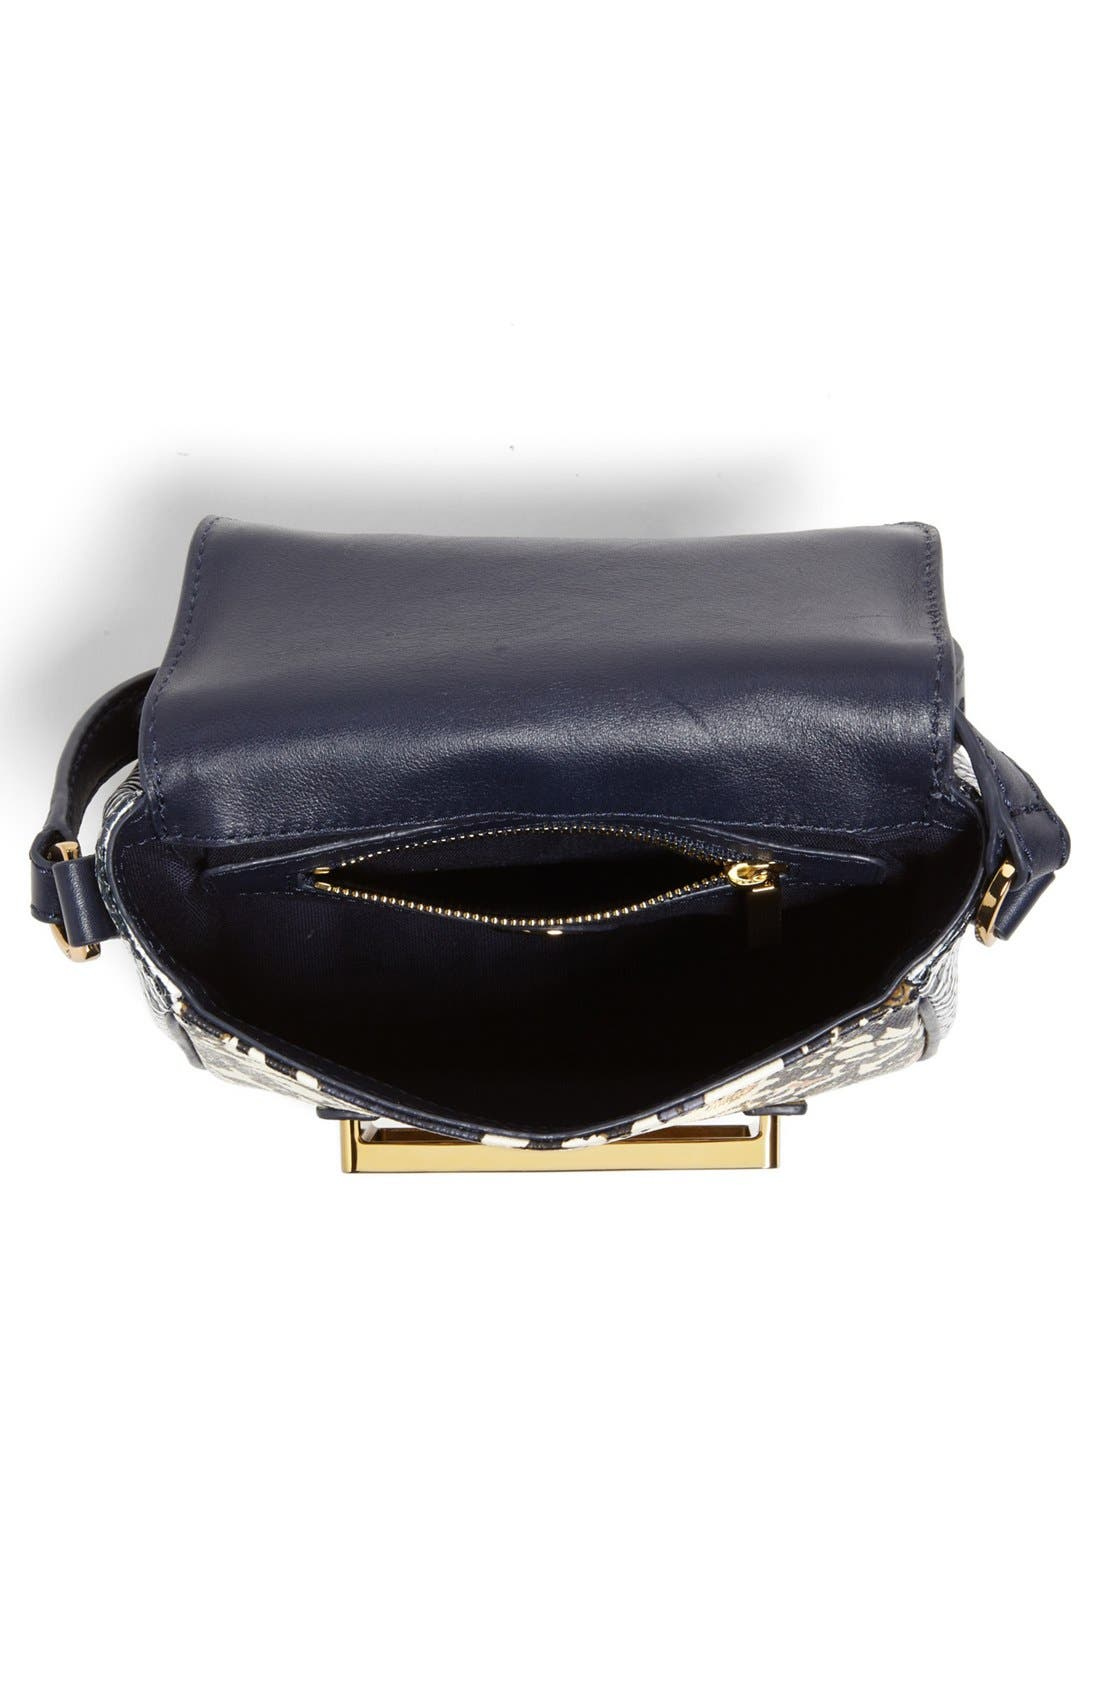 Alternate Image 3  - Tory Burch 'Jeweled' Leather Crossbody Bag